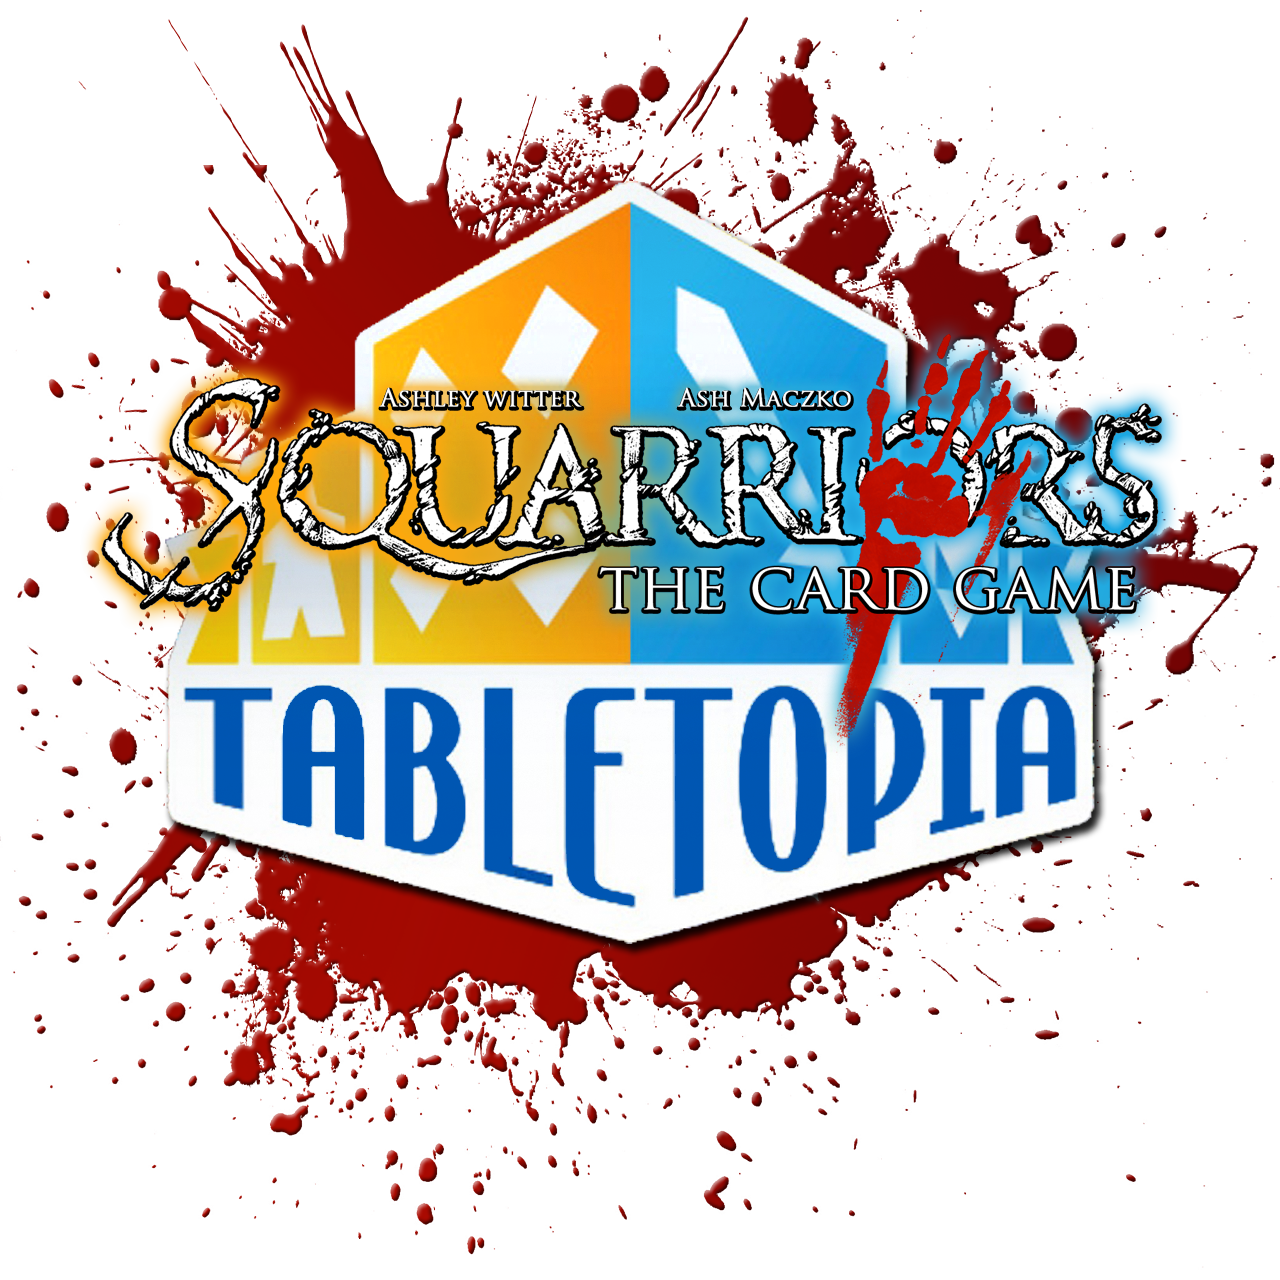 Play STCG ONLINE! - Get your fill of furry fury and woodland warfare with our implementation of Squarriors The Card Game on Tabletopia! Play the basic Tin Kin vs. Maw version completely for free or upgrade to the full version of the game!